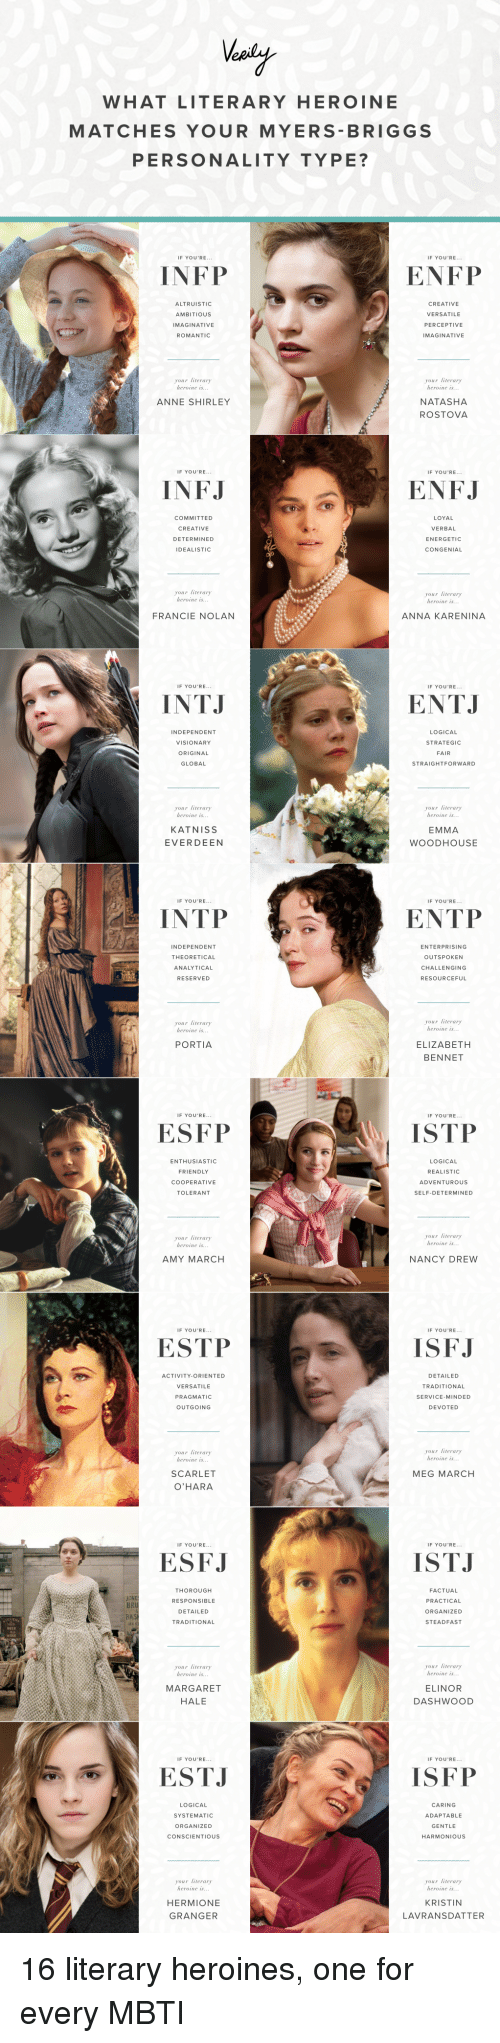 WHAT LITERARY HEROINE MATCHES YOUR MYERS-BRIGGS PERSONALITY